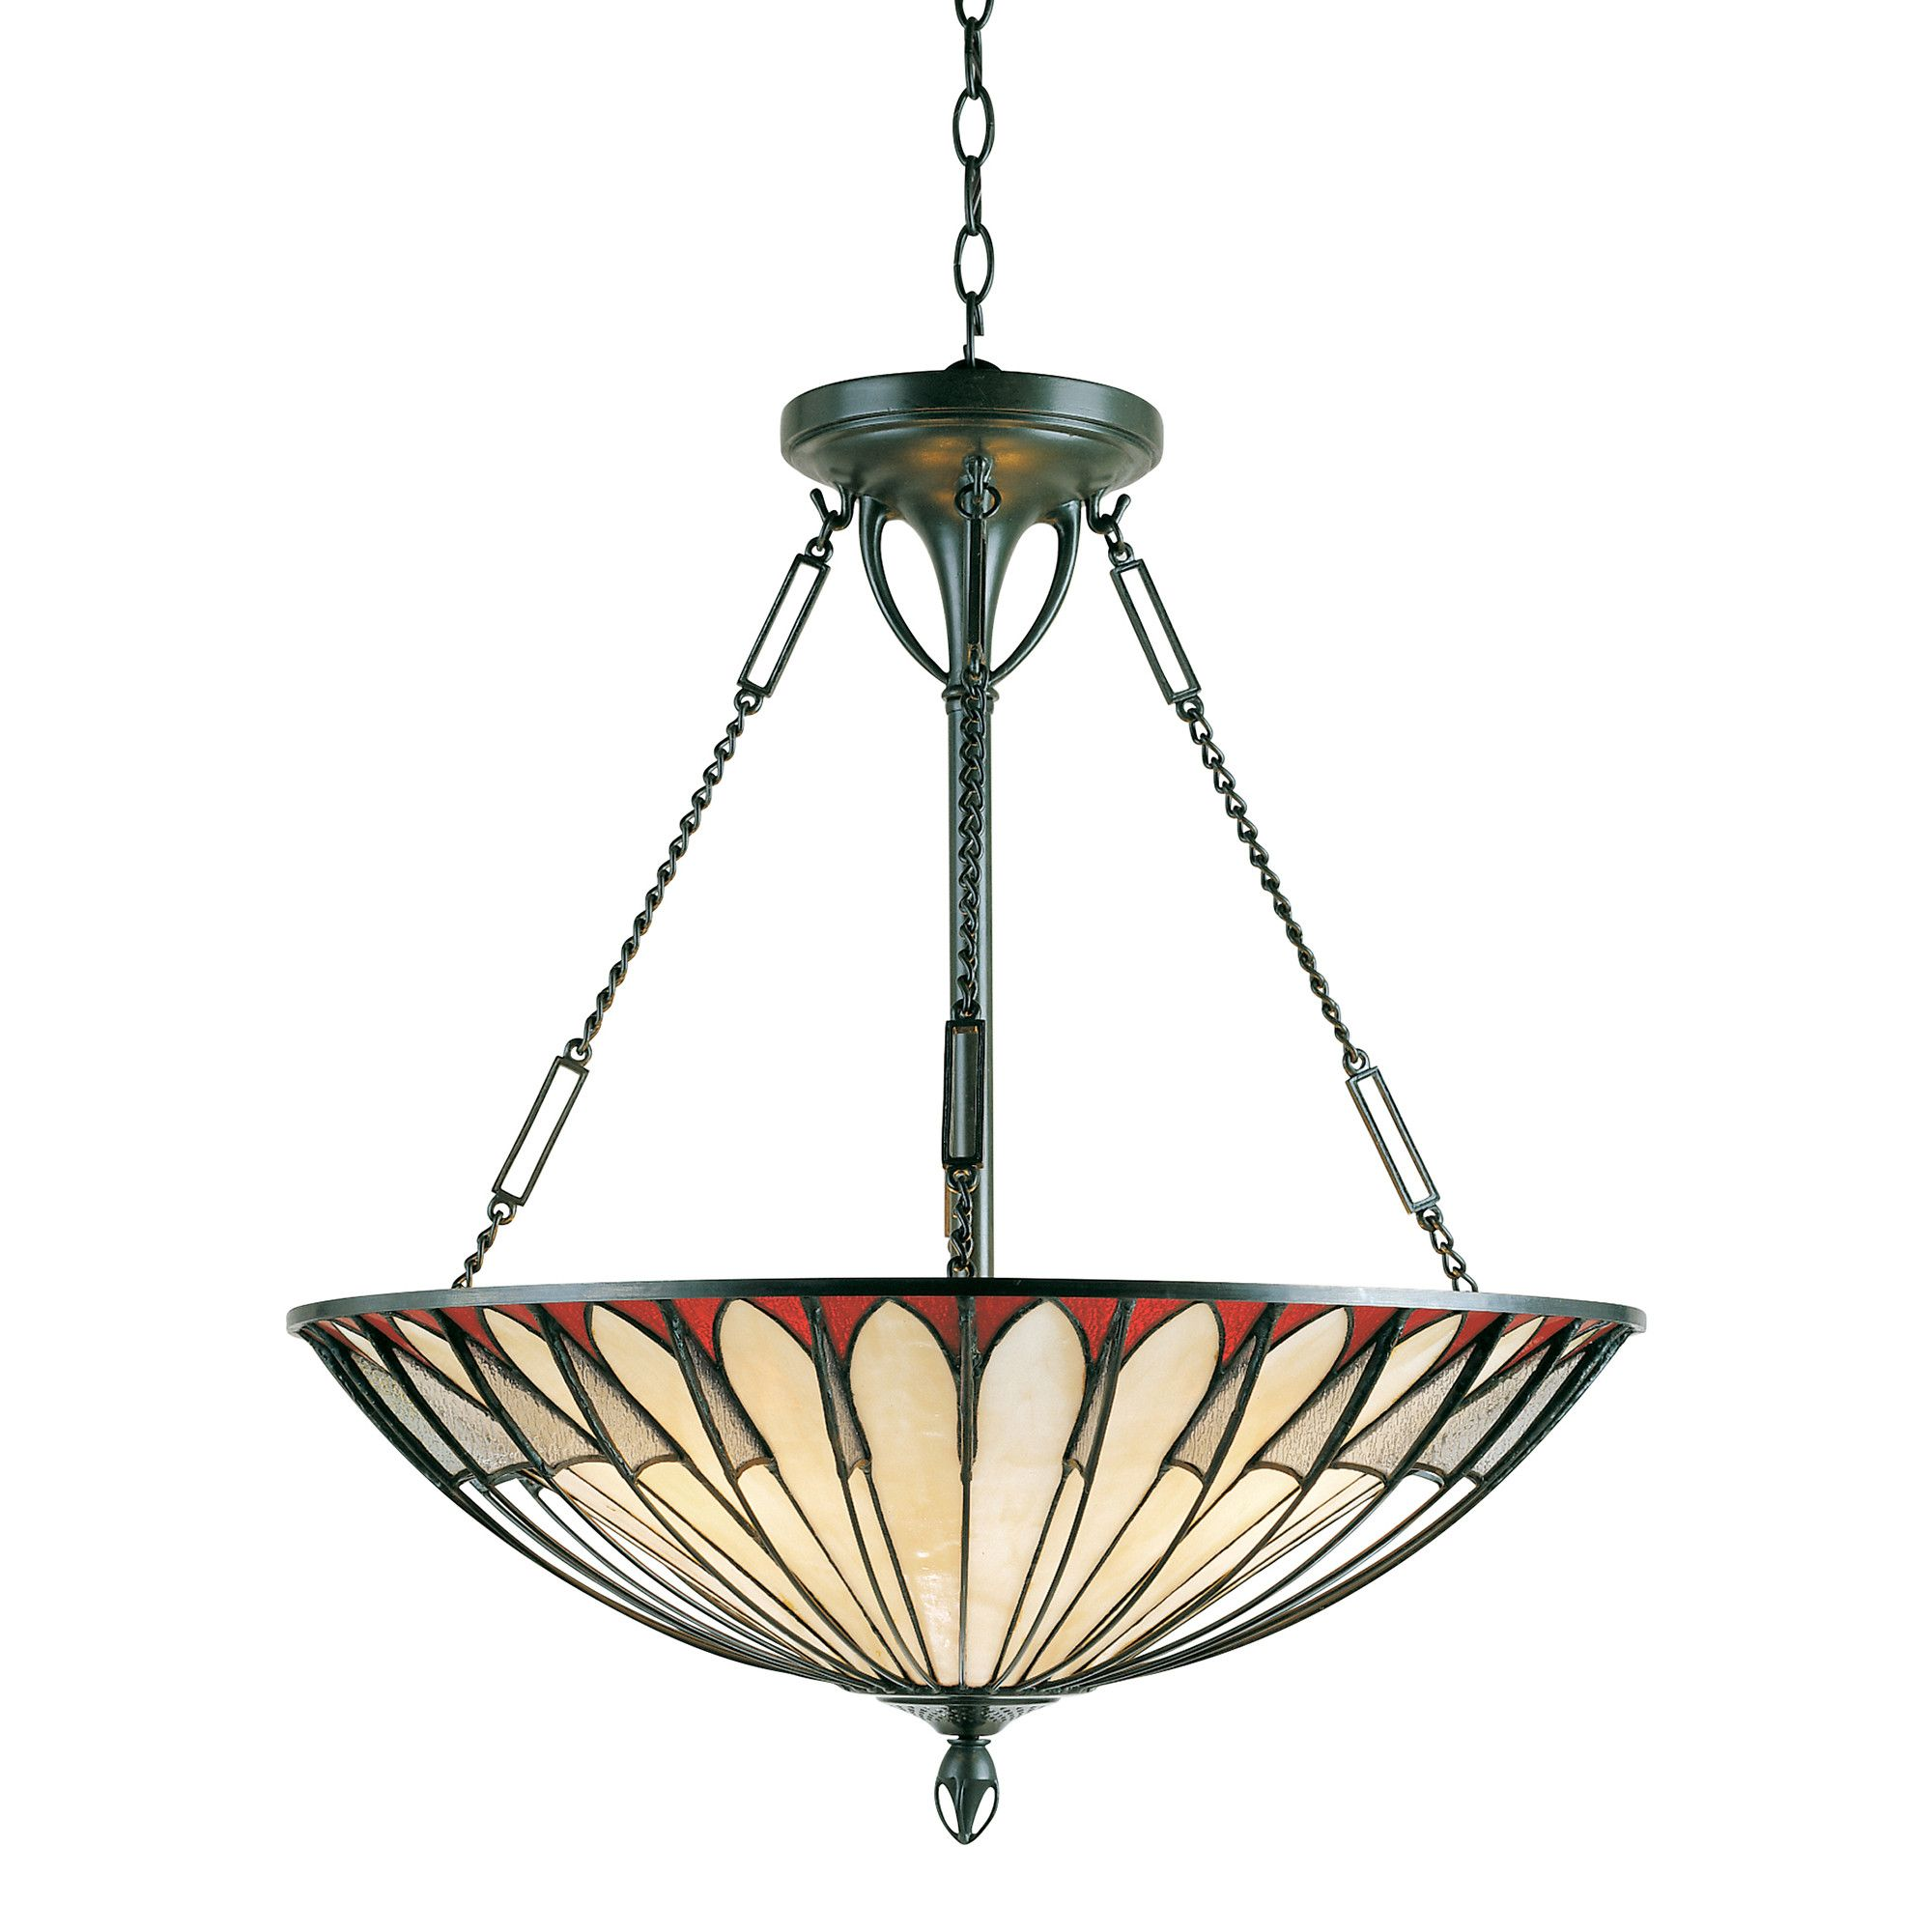 The Alhambra Tiffany Ceiling Light by Elstead Lighting is a finely